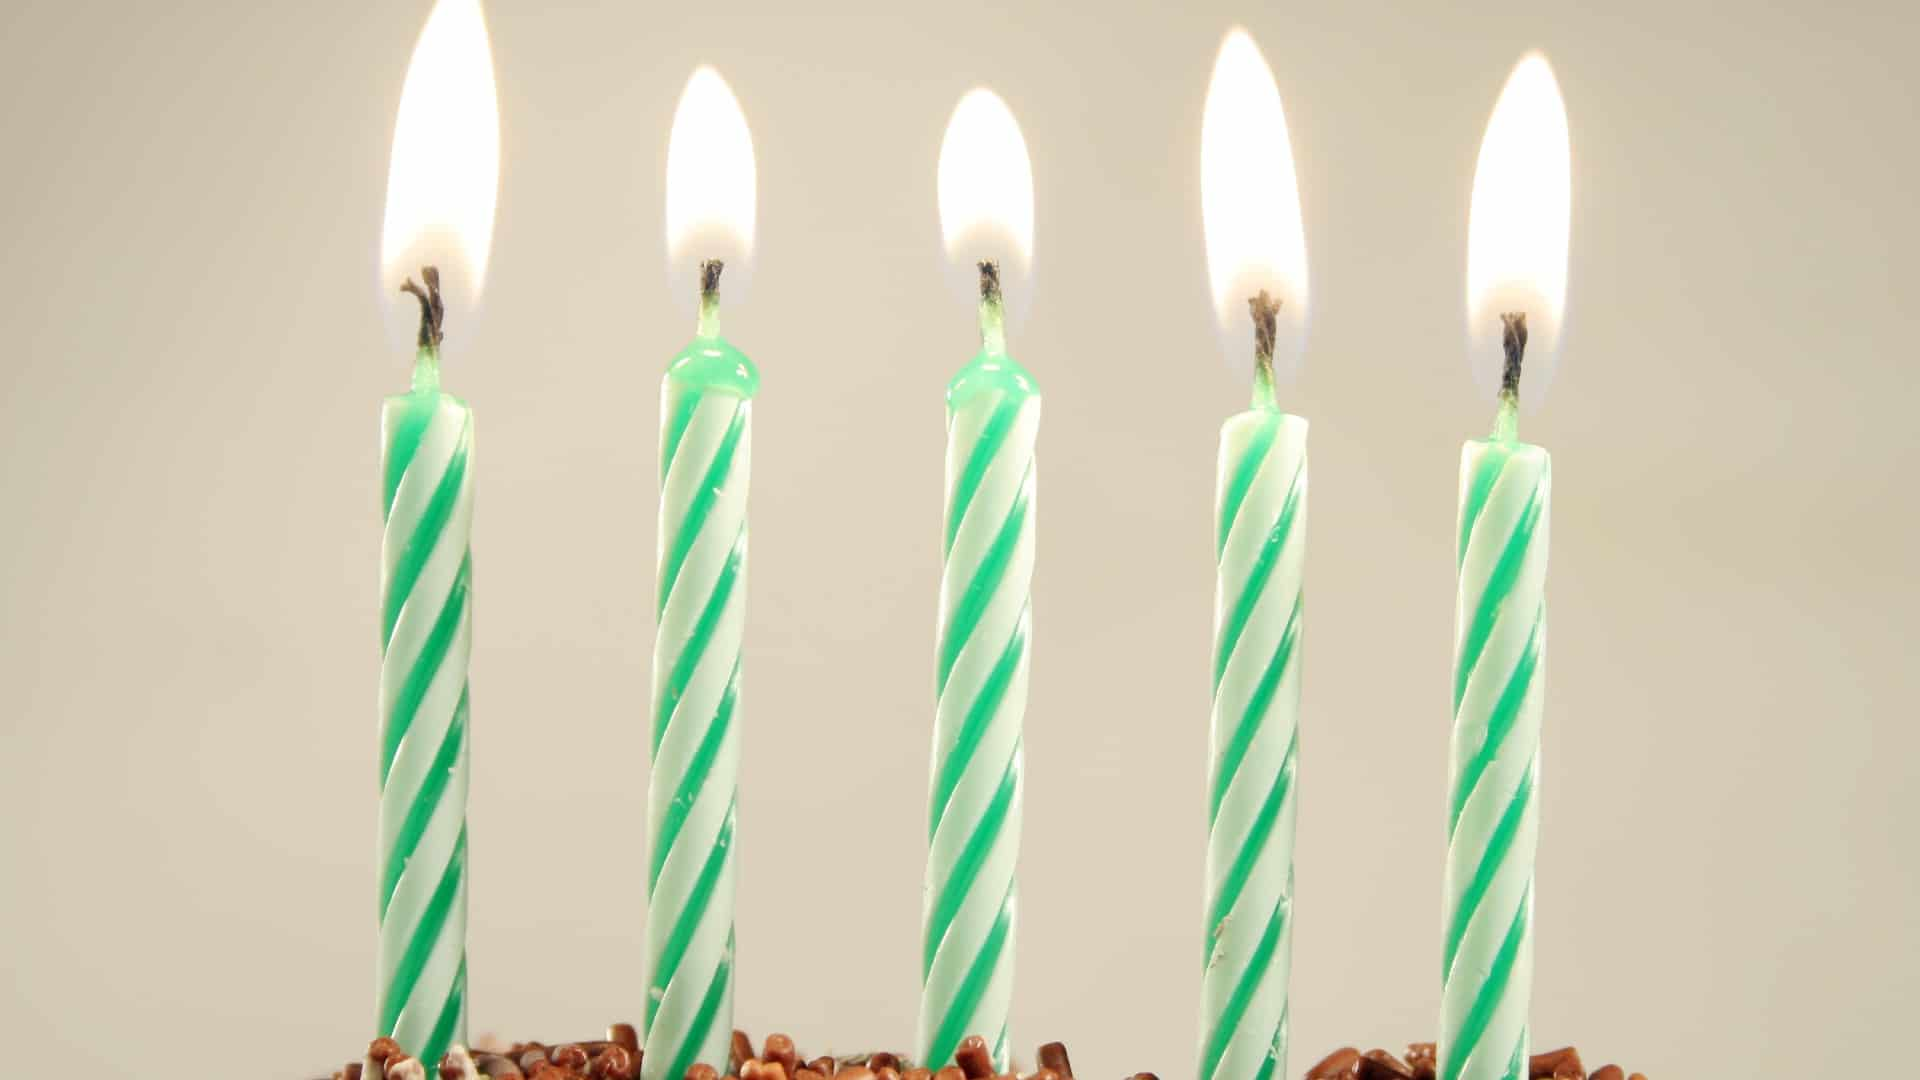 five asx shares represented by five candles on birthday cake